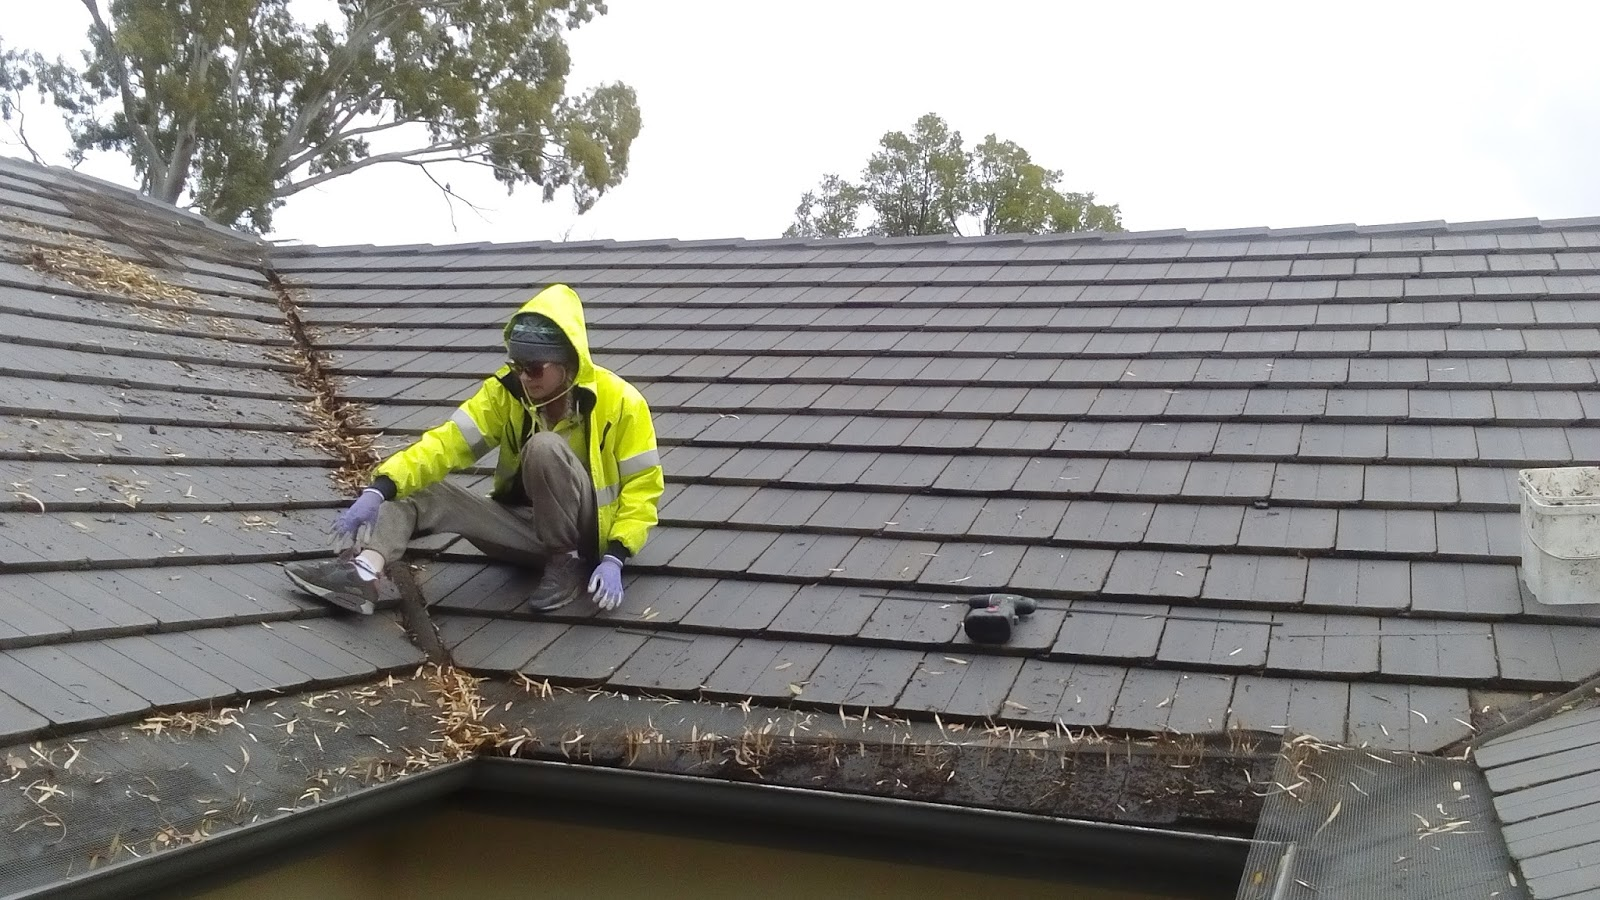 Clean Pro Gutter Cleaning - A Professional Gutter Cleaning Company